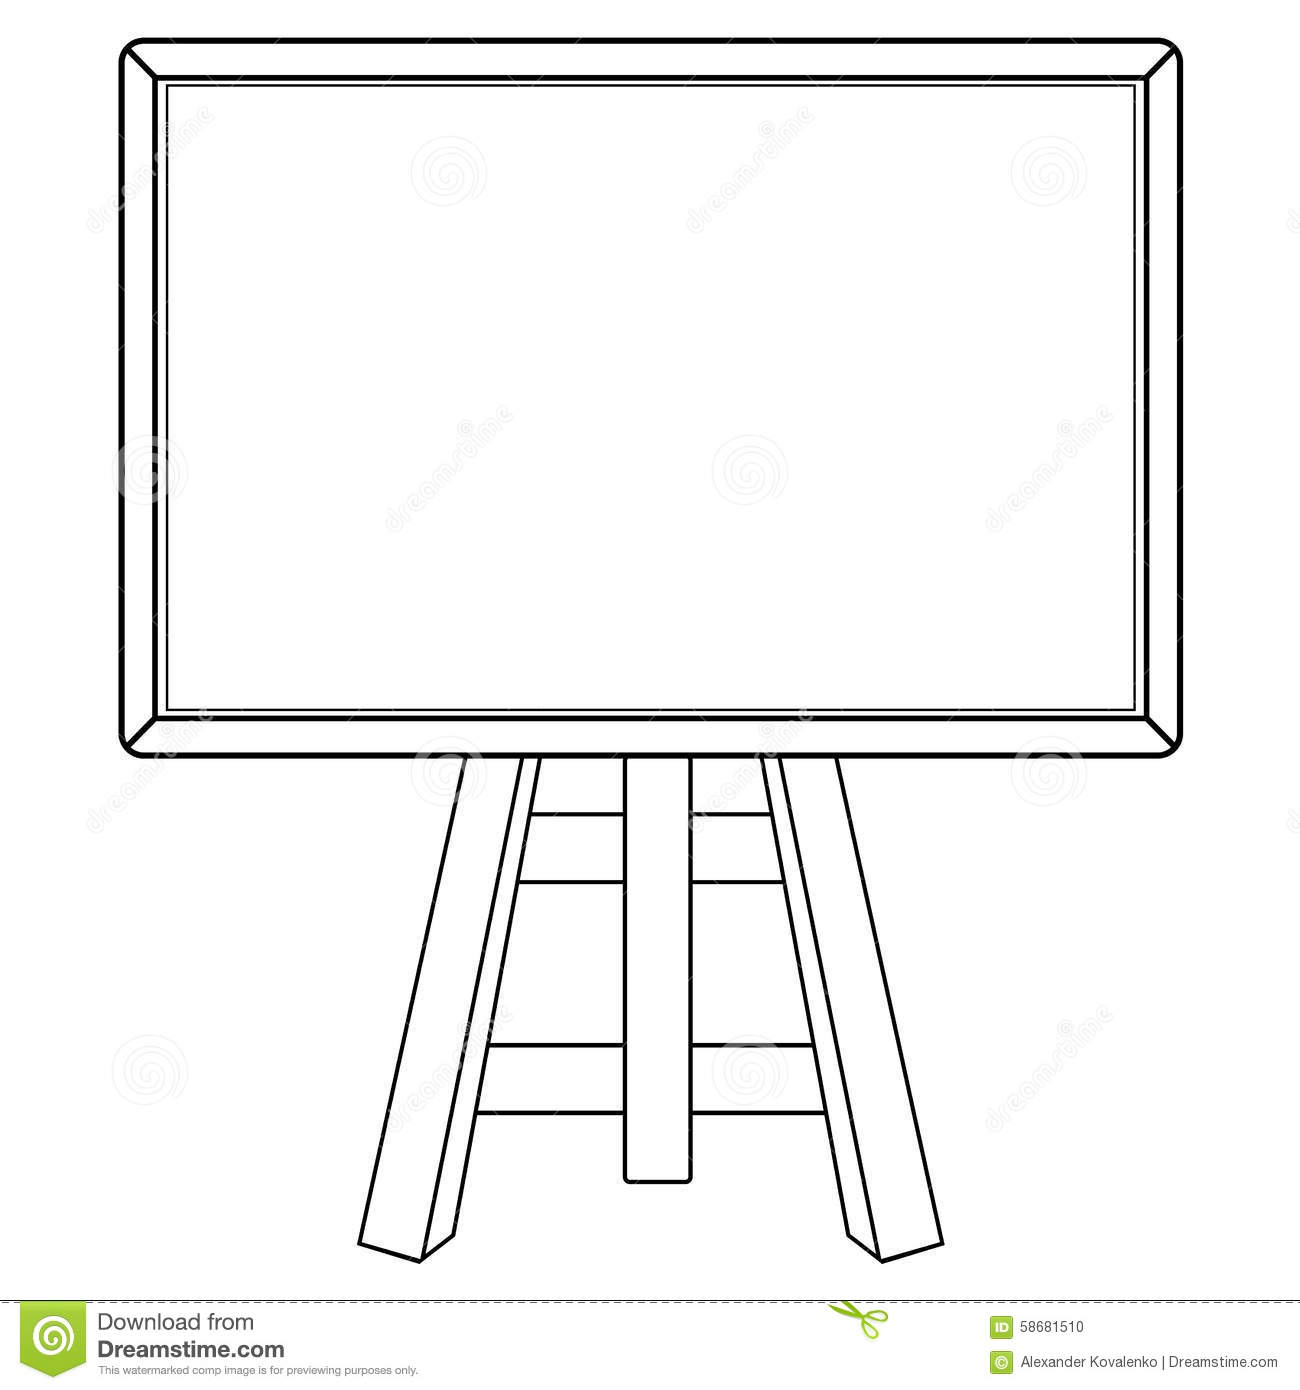 Blackboard Stock Illustration - Image: 58681510